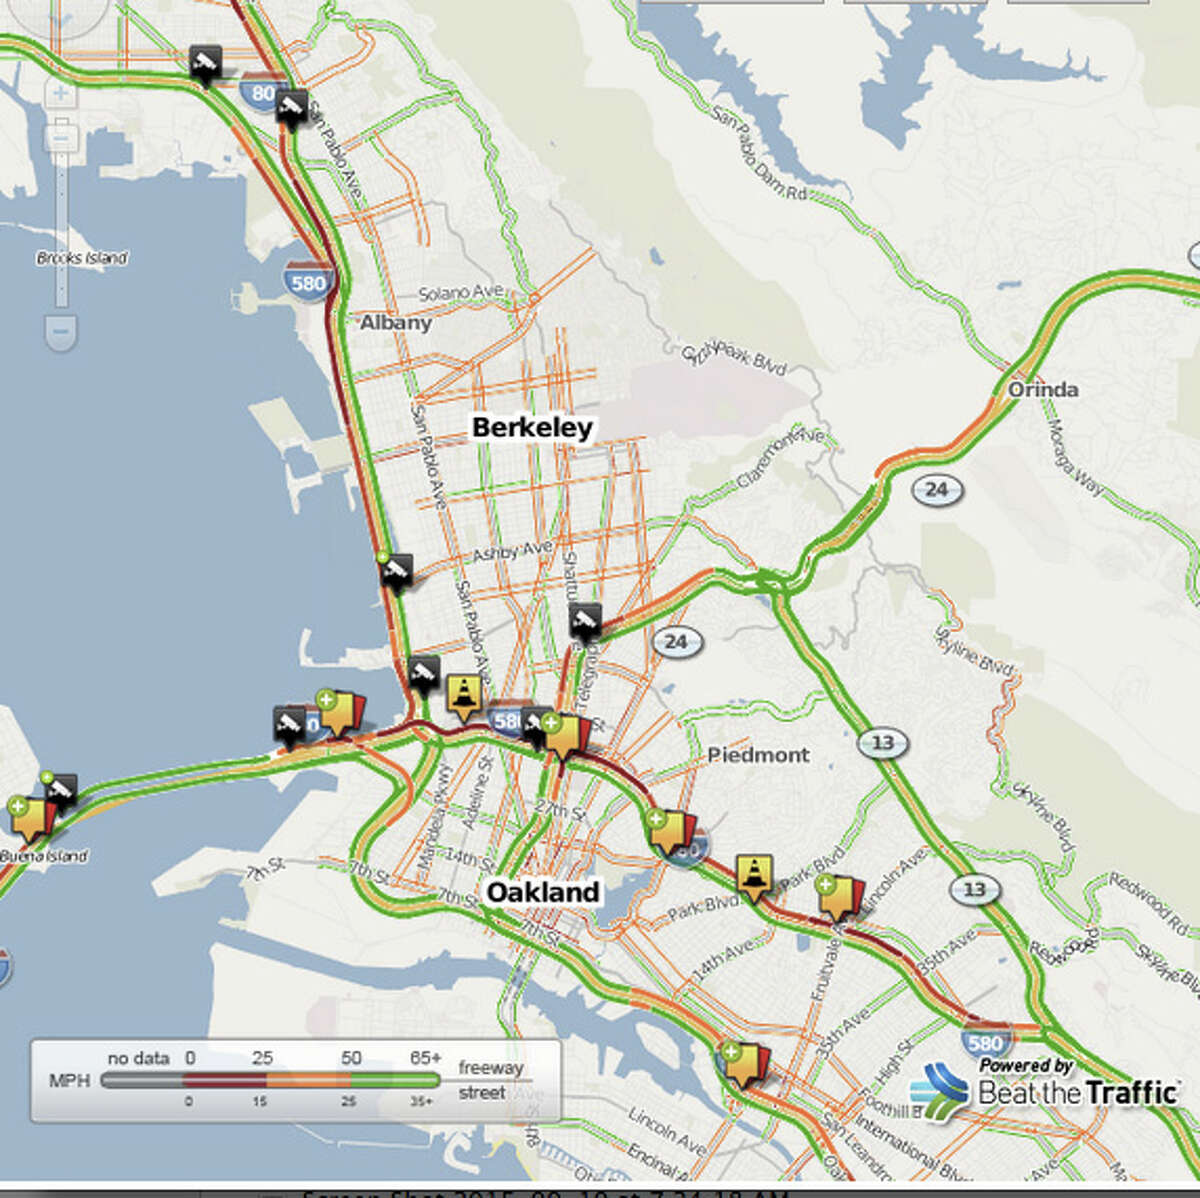 As of 9:30 am traffic was backed up on I-80 westbound from past the 580 merge, and on Westbound 580 to Highway 13.